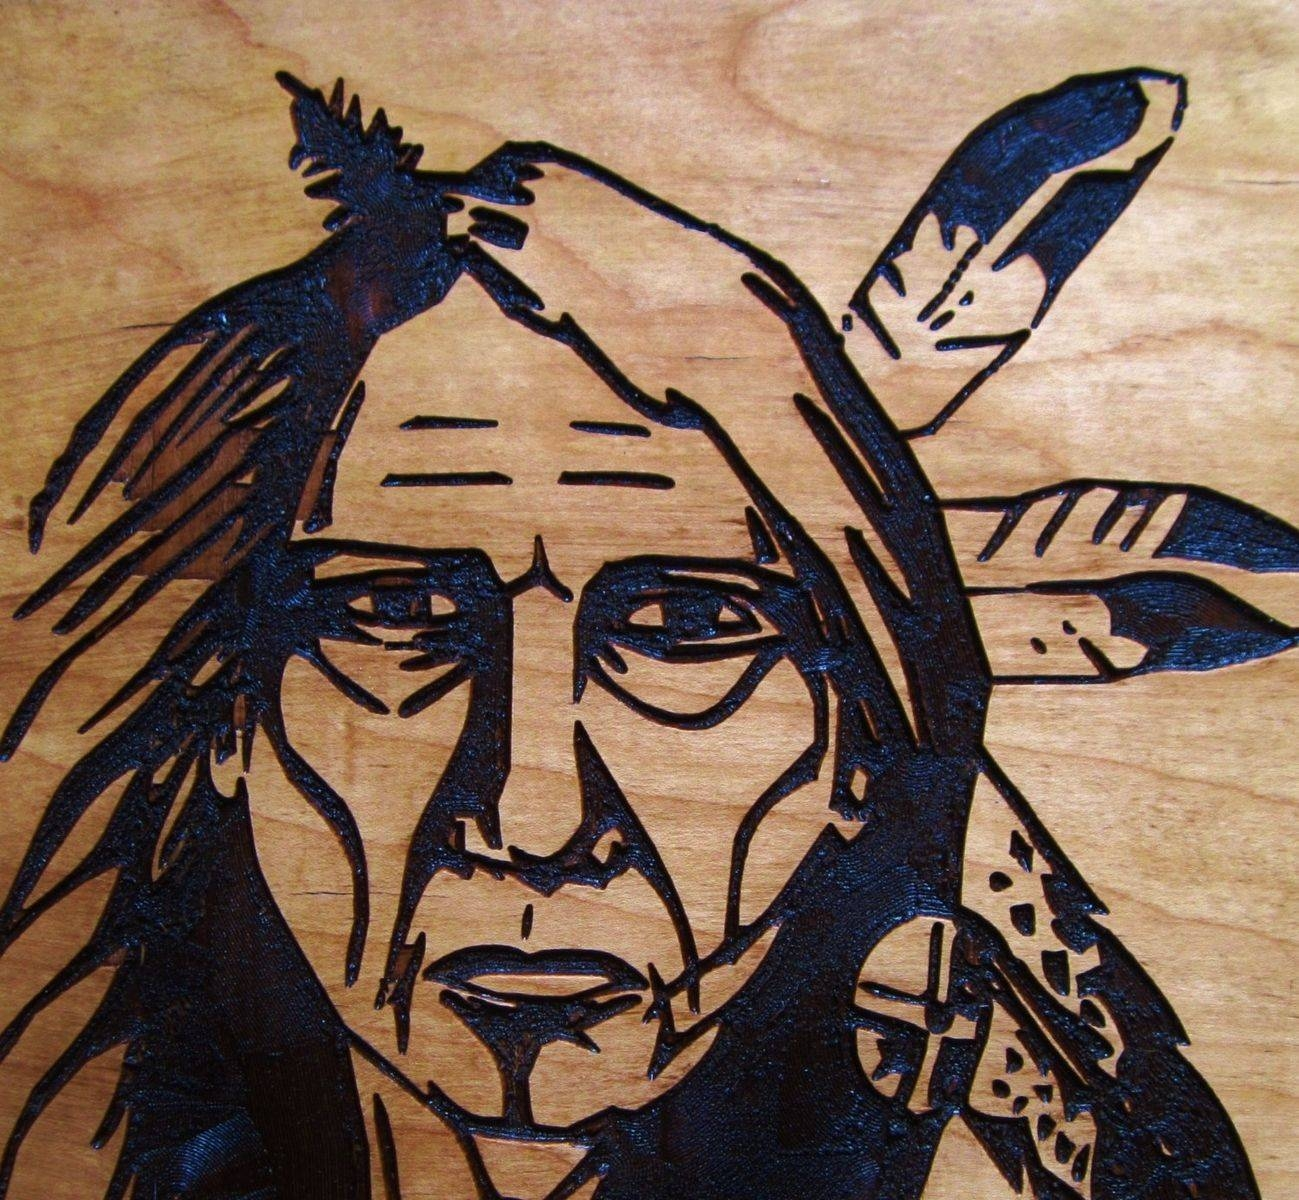 Hand Crafted Native American Indian Elder Woman Handmade Wood Pertaining To Most Recent Native American Wall Art (View 10 of 25)